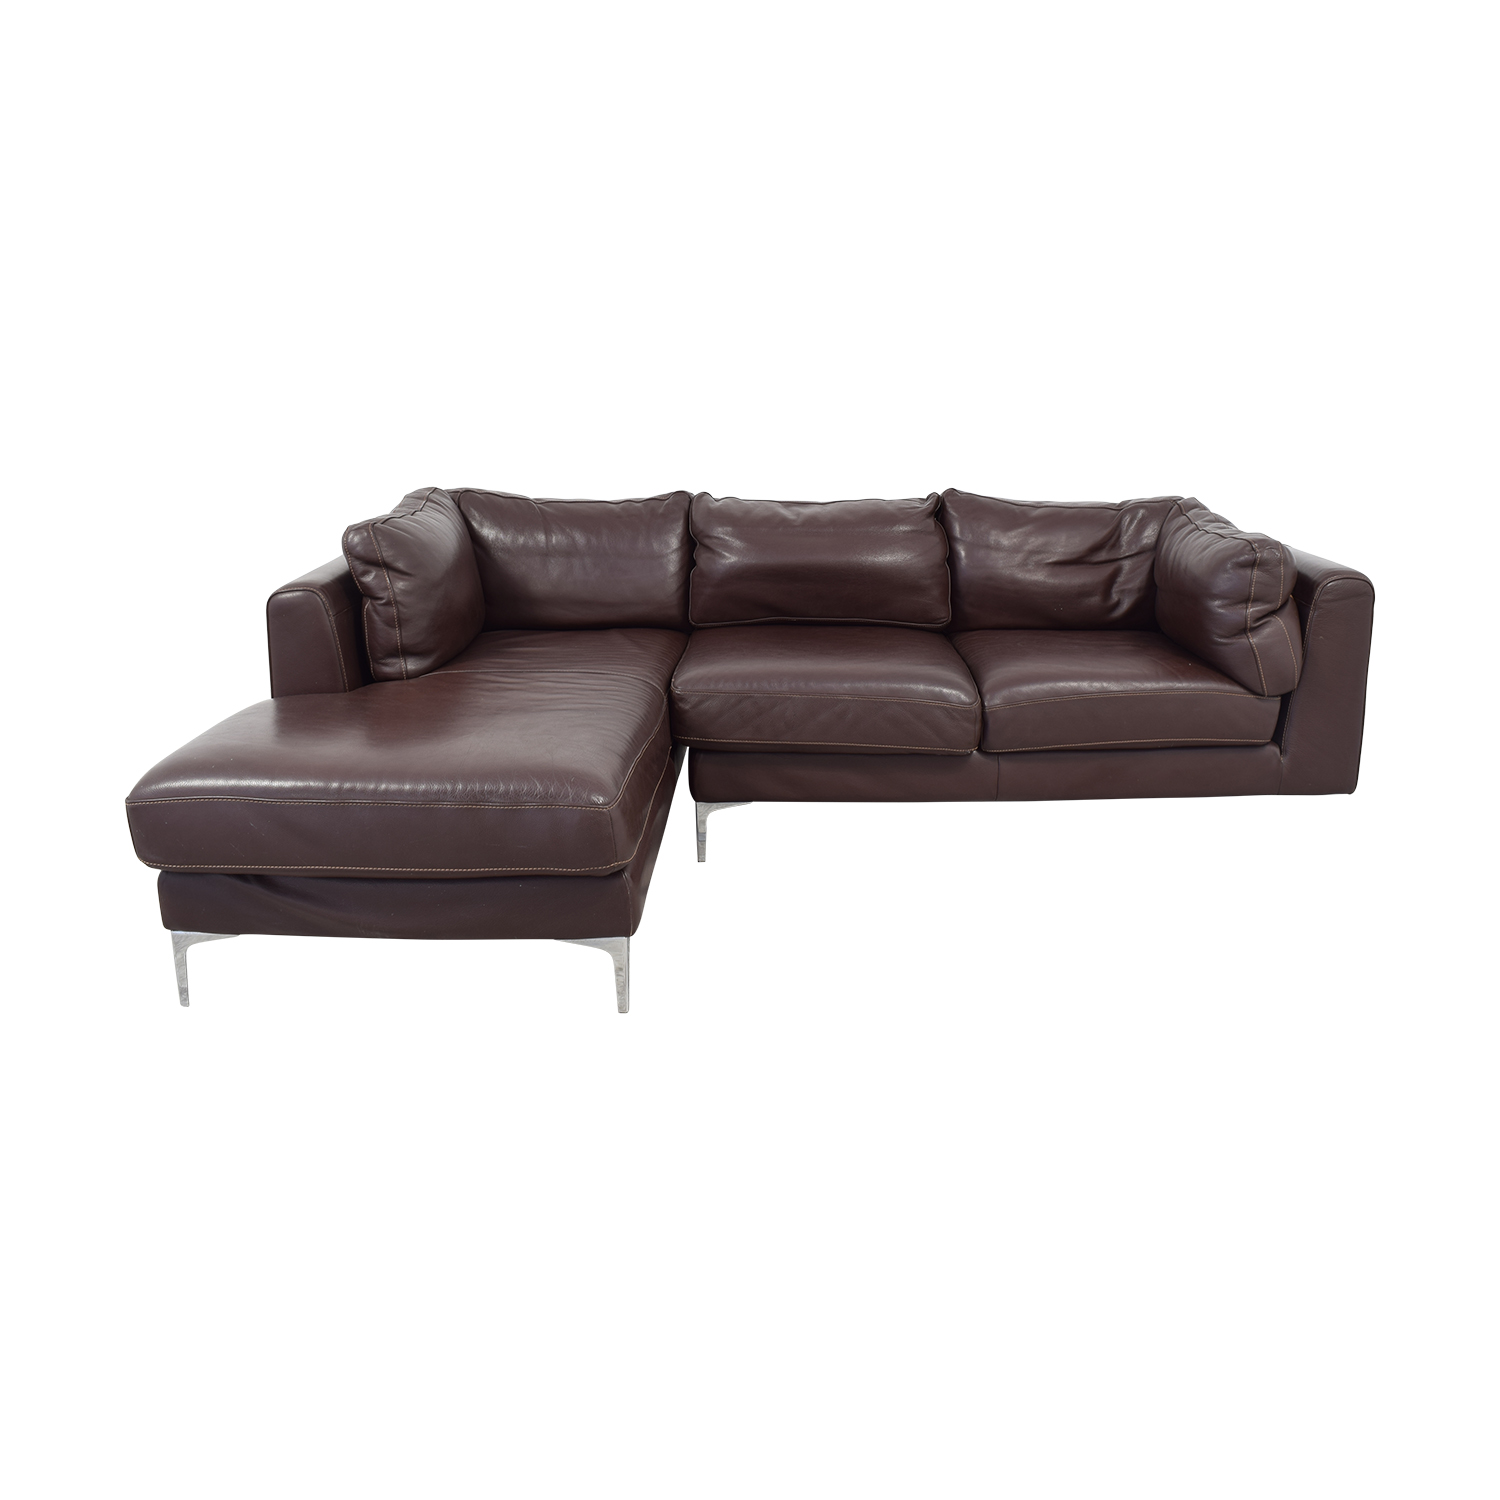 buy Design Within Reach Nicoletti Chaise Sectional Sofa Design Within Reach